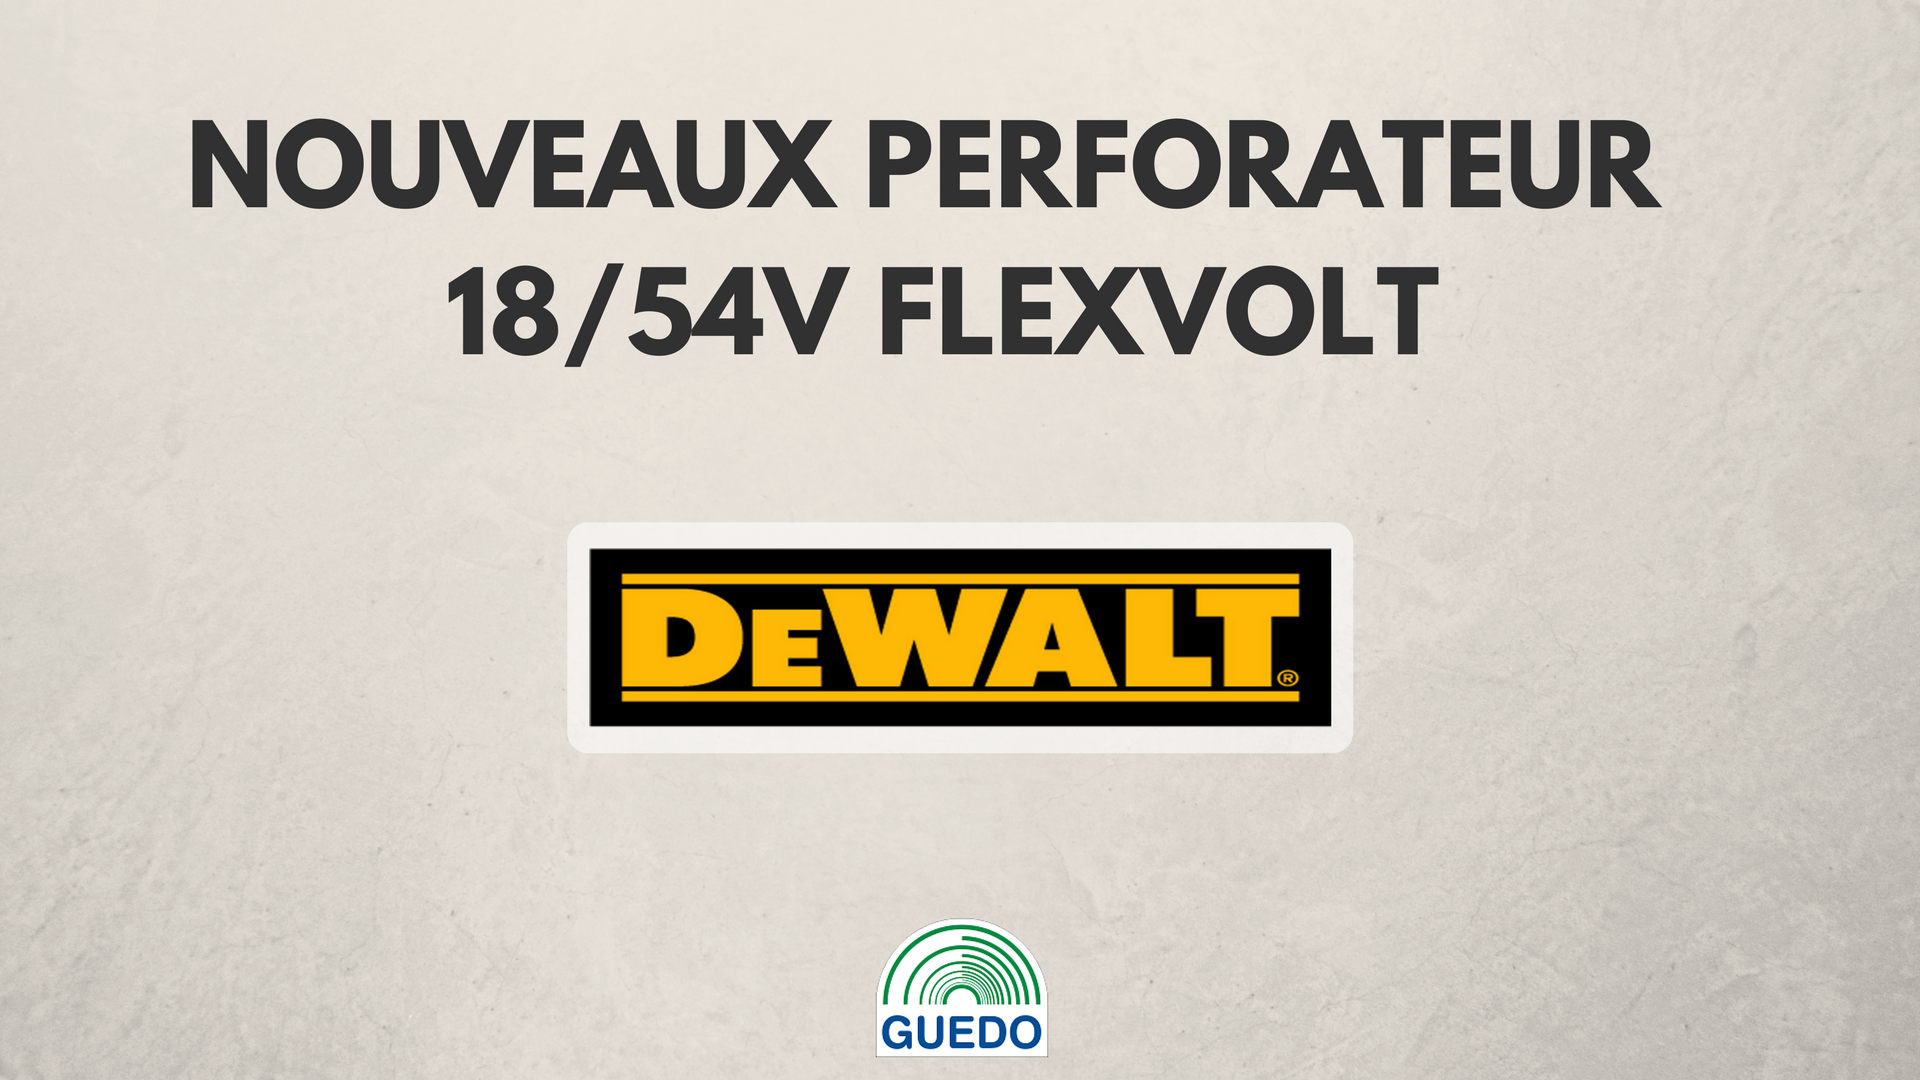 Guedo dewalt perforateur